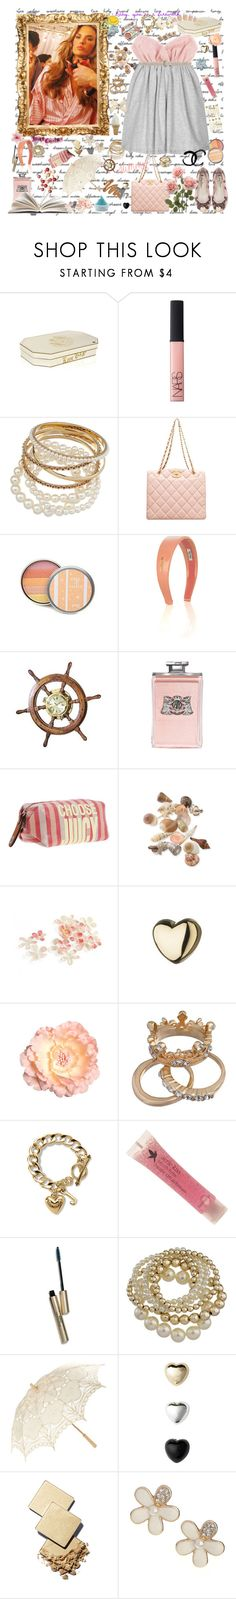 """""""'cos baby,ur a FiREWORK;♥"""" by shanghai2 ❤ liked on Polyvore featuring Juicy Couture, NARS Cosmetics, Miss Selfridge, Chanel, Pop Beauty, Miu Miu, WALL, Rene, Nicole and Lauren Ralph Lauren"""